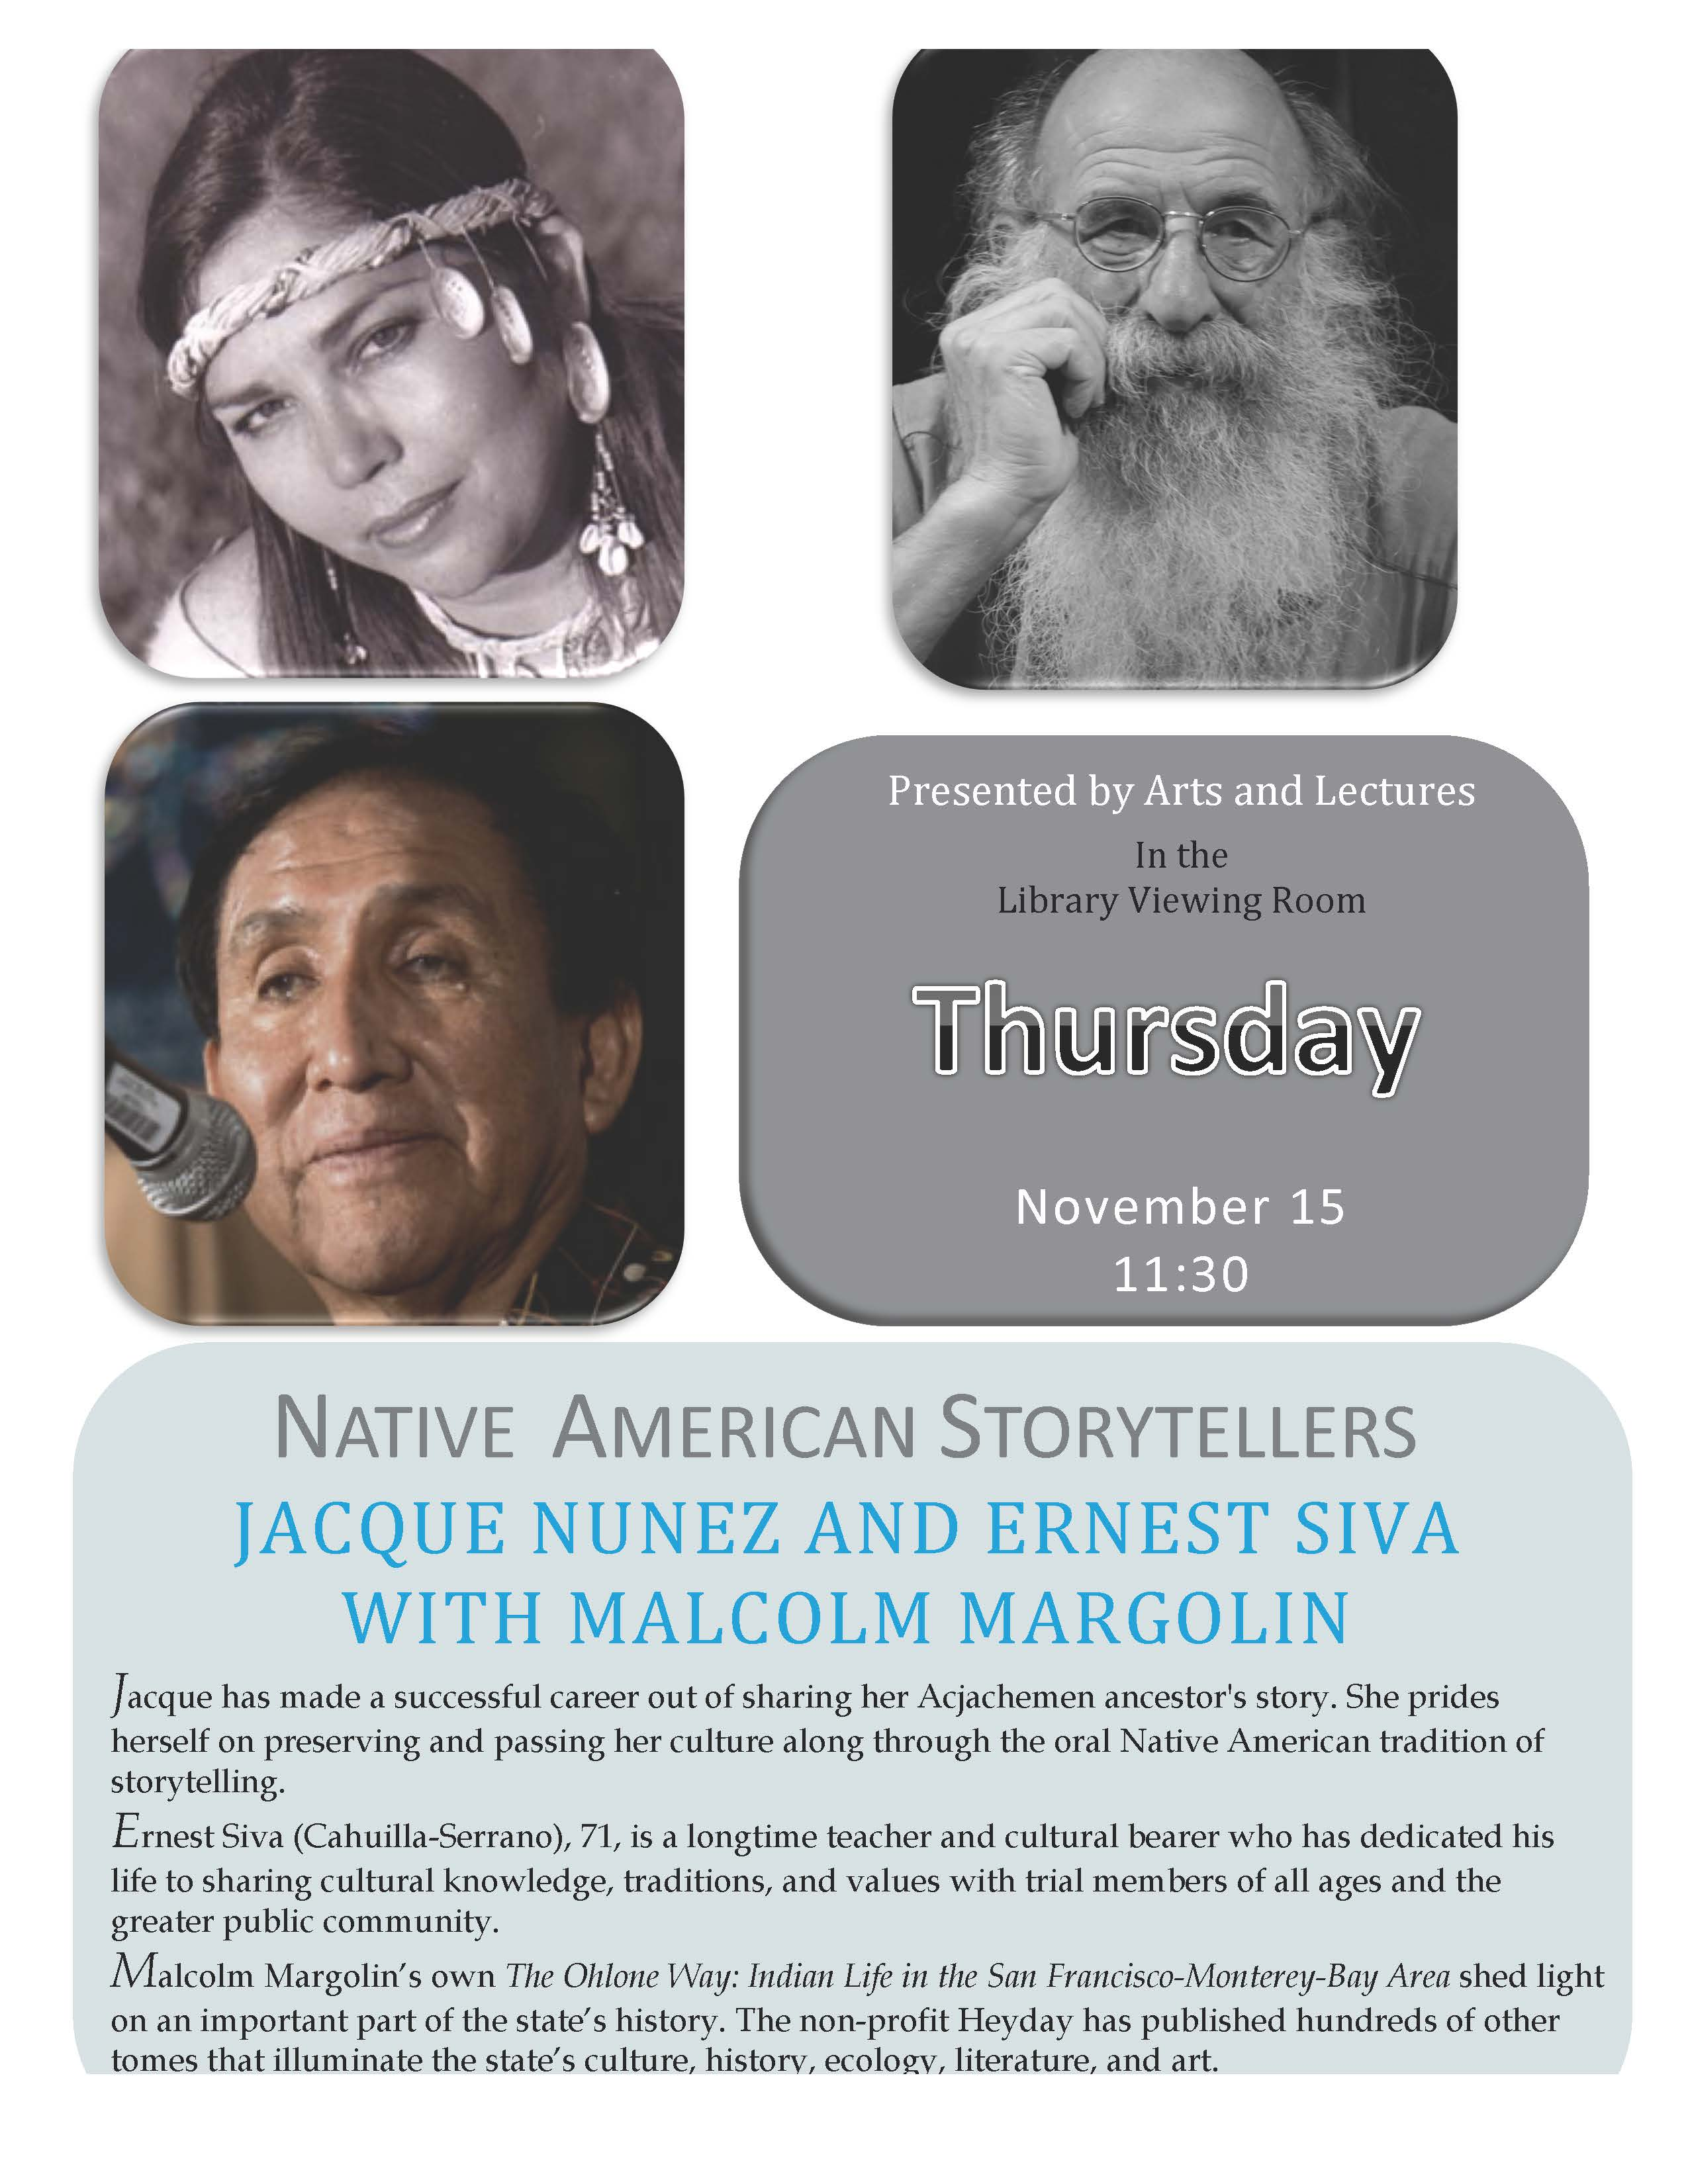 November 15 at 11:30 in the Library Viewing Room willl feature a native american storytelling event